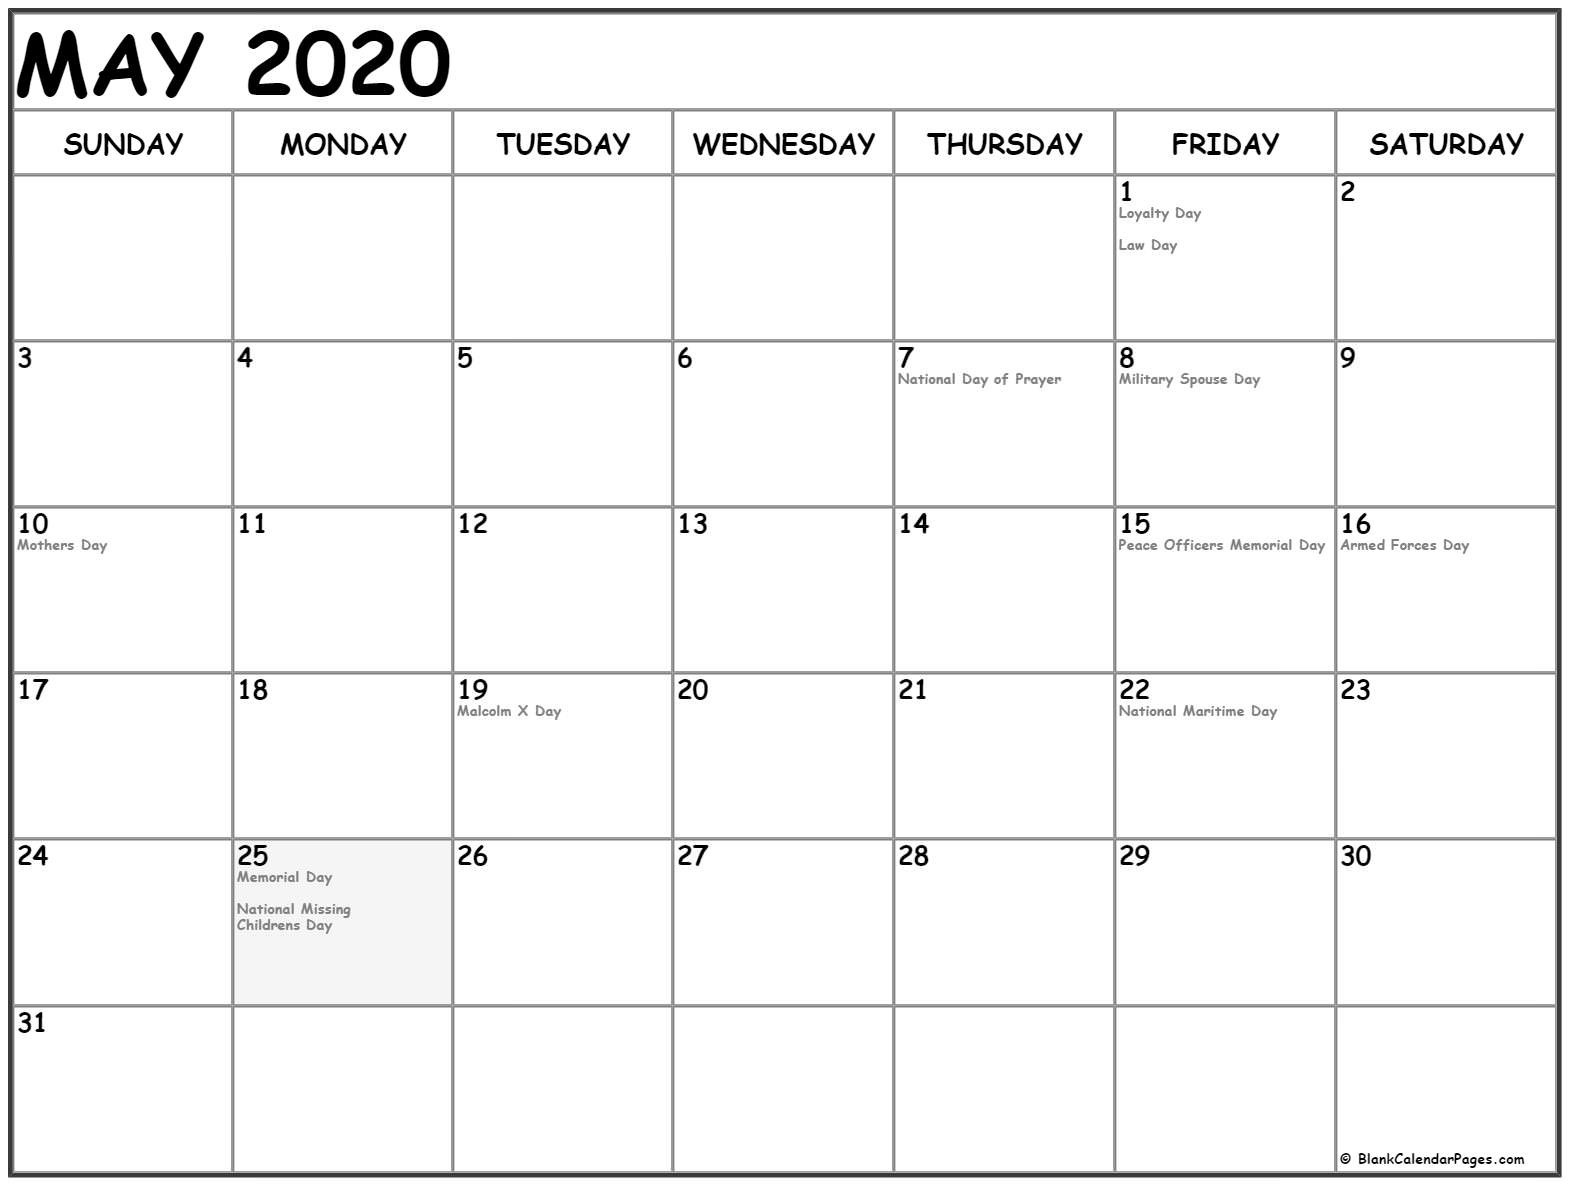 2020 Printable Calendar By Month With Holidays May 2020 Calendar Dashing 2020 Calendar With Holidays